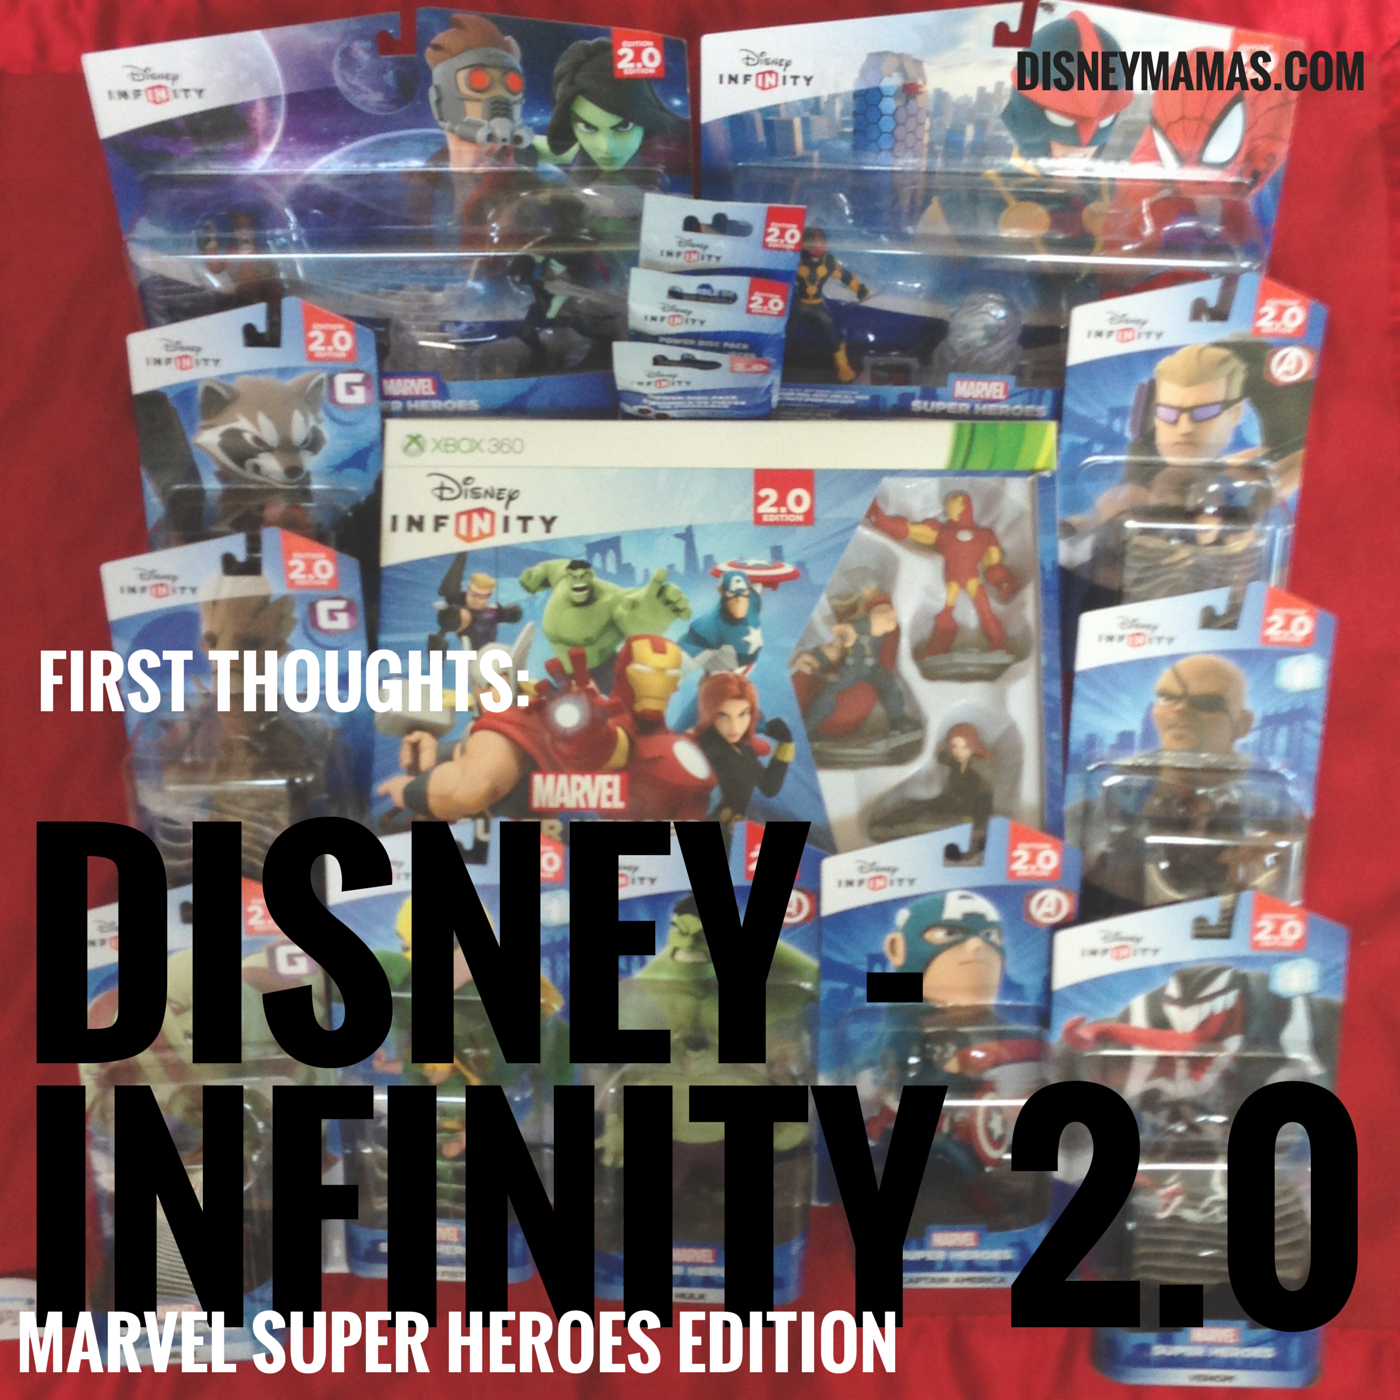 First Thoughts on Disney Infinity 2.0 Marvel Super Heroes